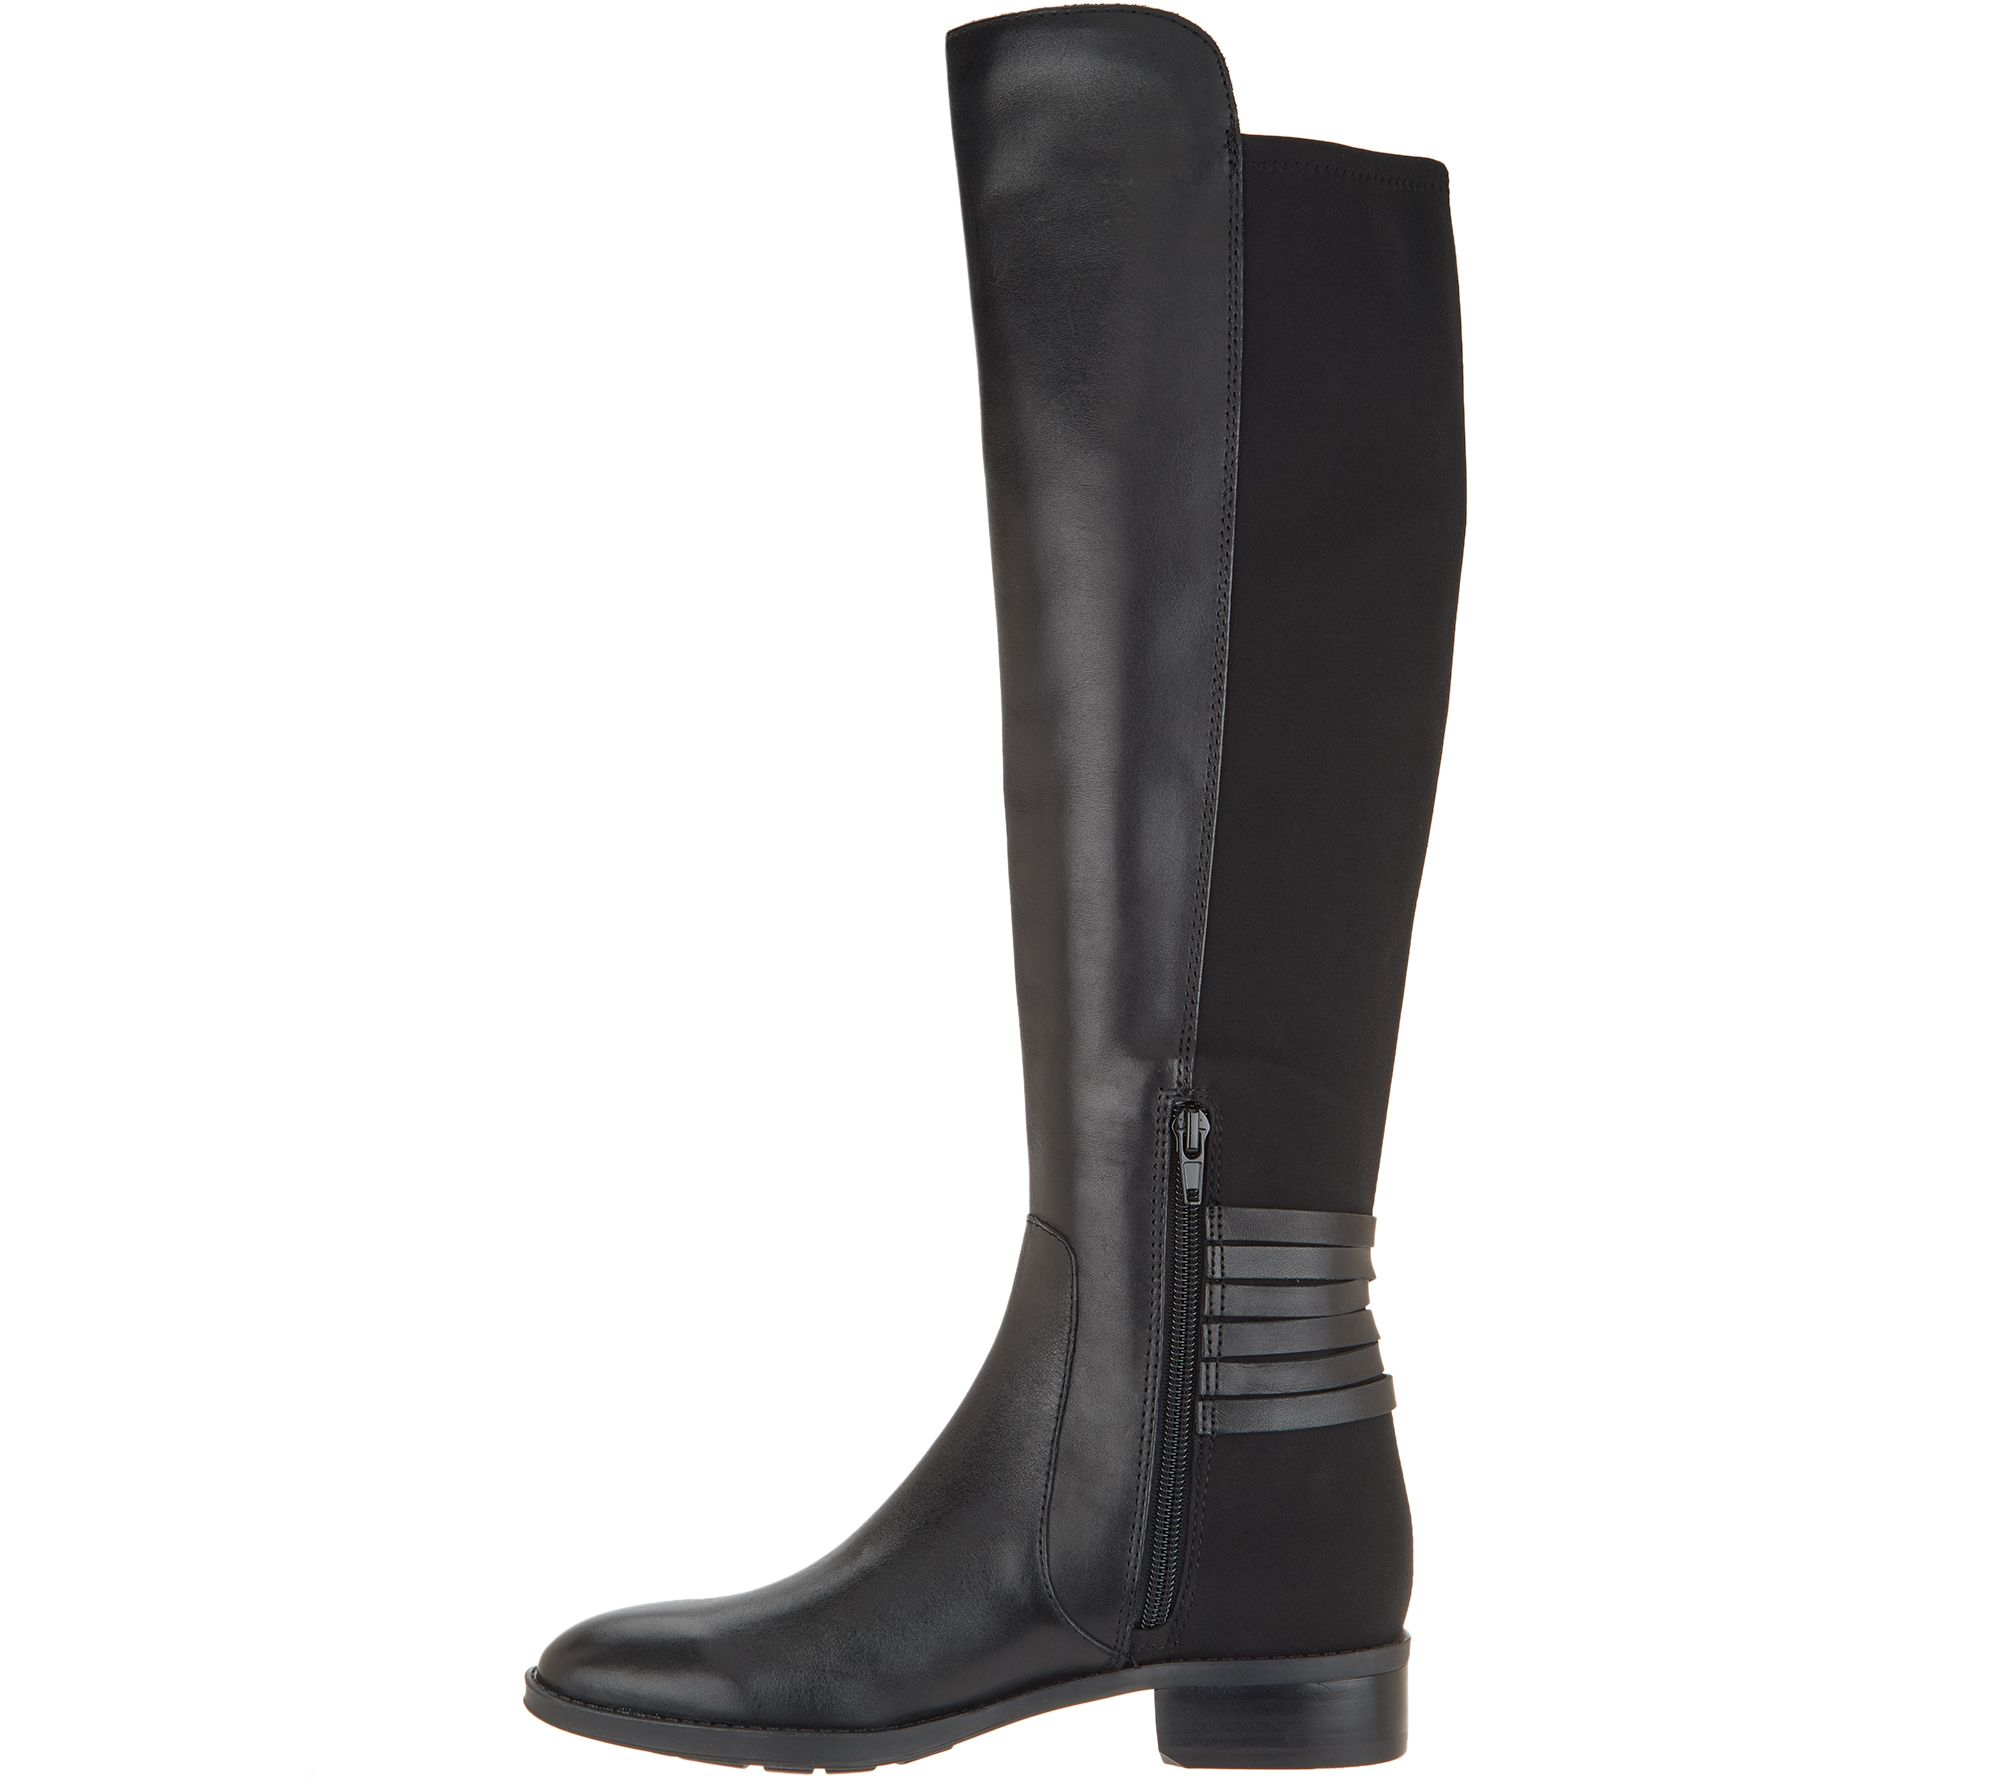 69fa0974137 Vince Camuto Medium Calf Leather   Suede Tall Shaft Boots- Pauletta - Page  1 — QVC.com